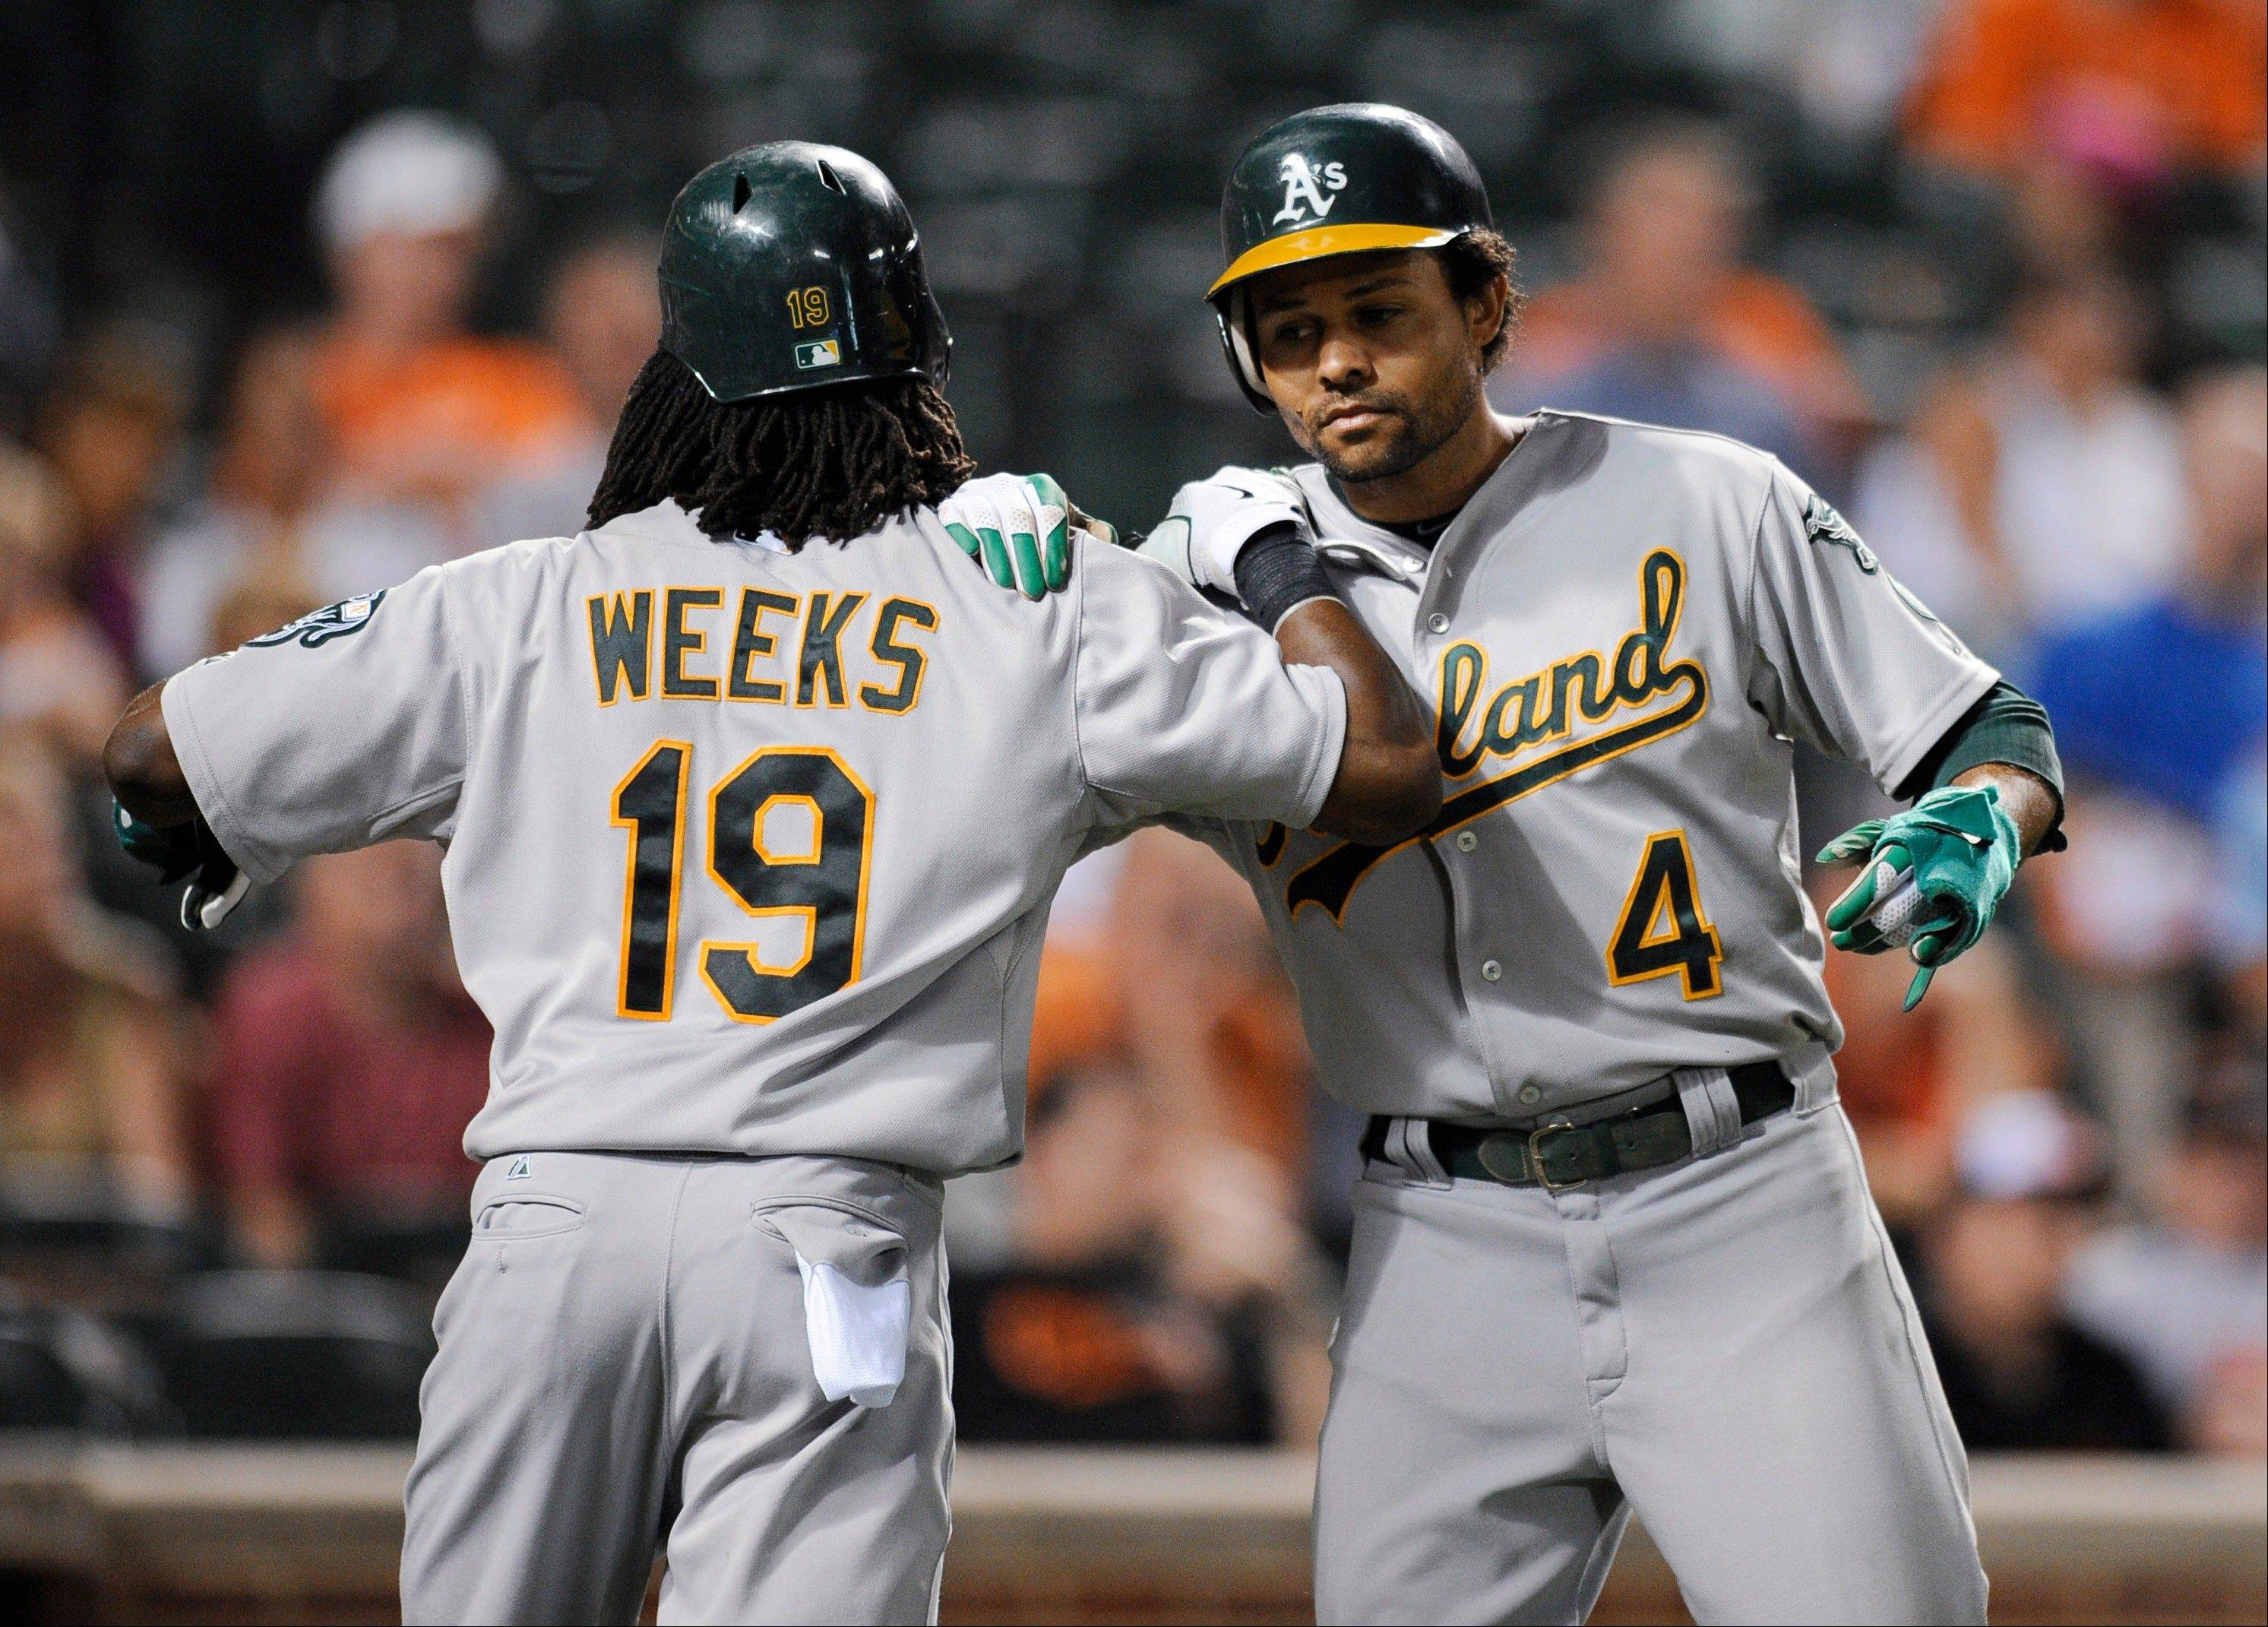 Oakland's Coco Crisp celebrates with Jemile Weeks after they both scored on a double by Seth Smith during the ninth inning Friday in Baltimore.